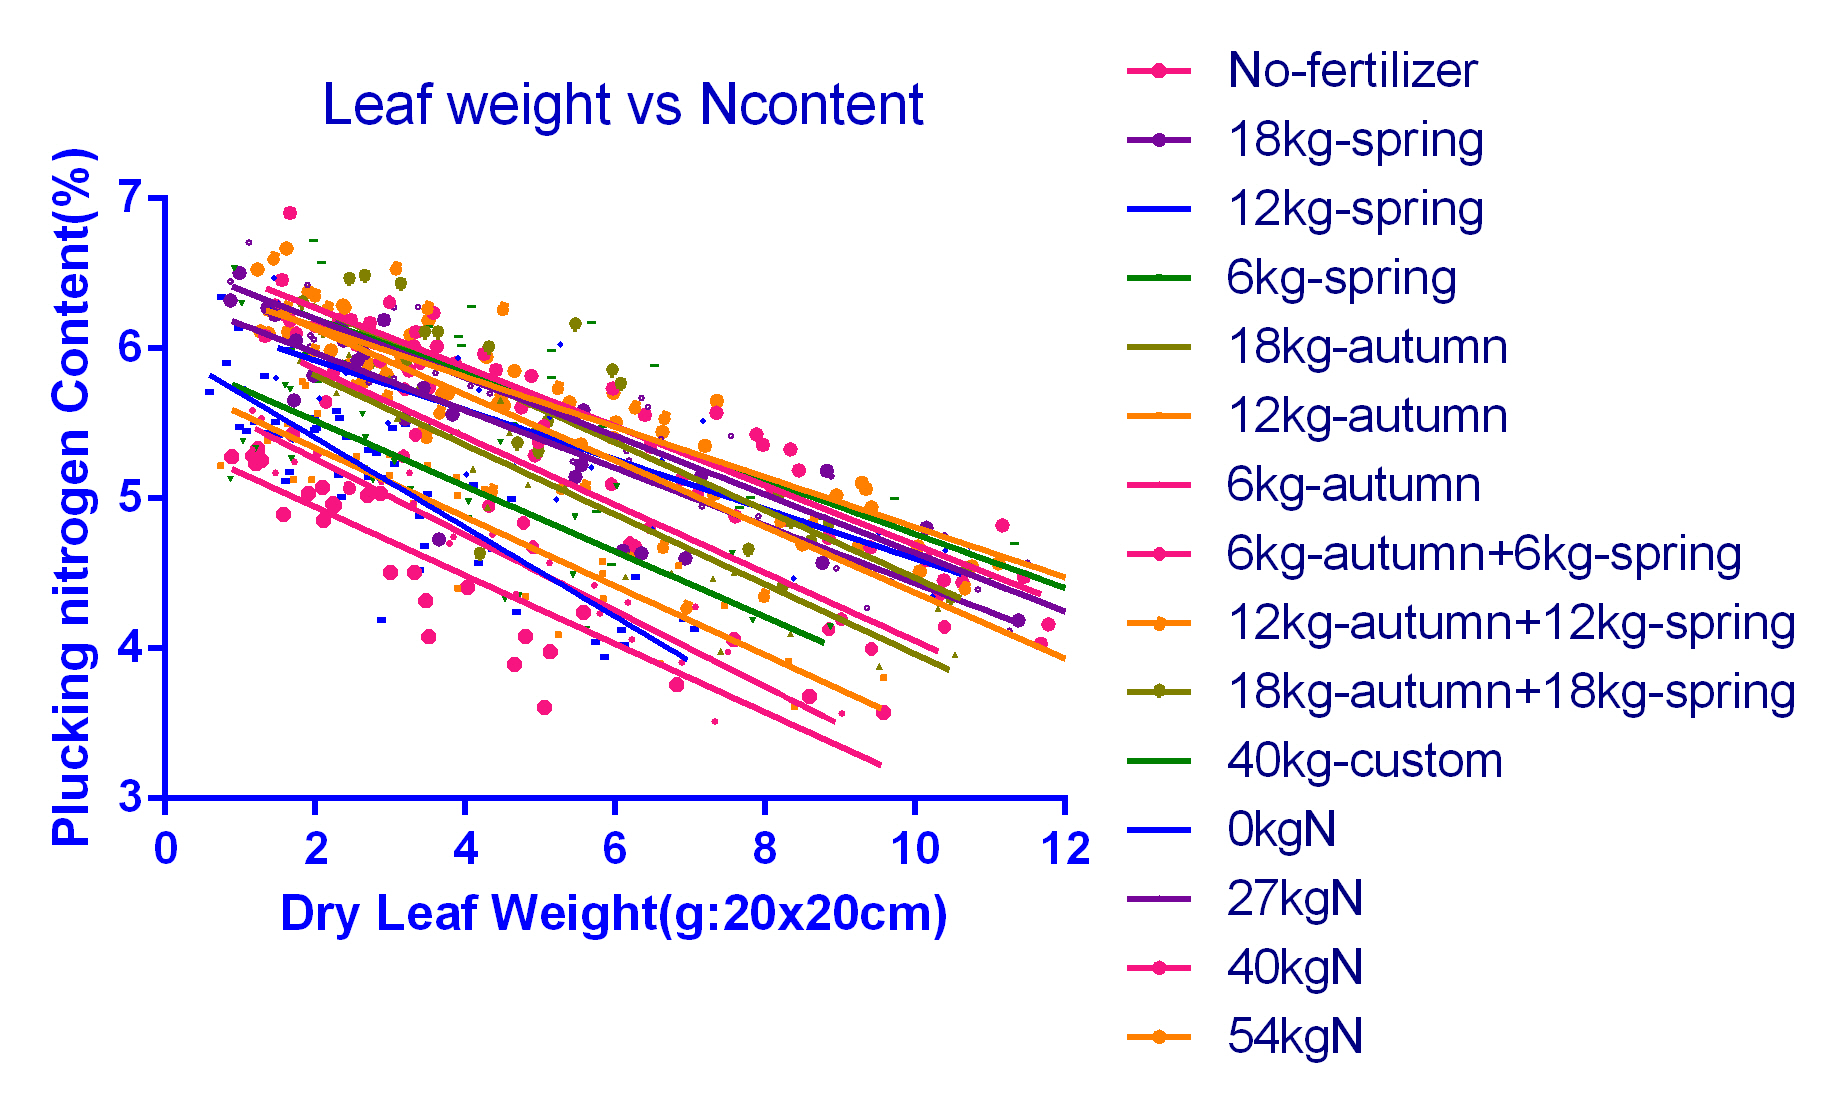 Lweight vs Ncontent all data